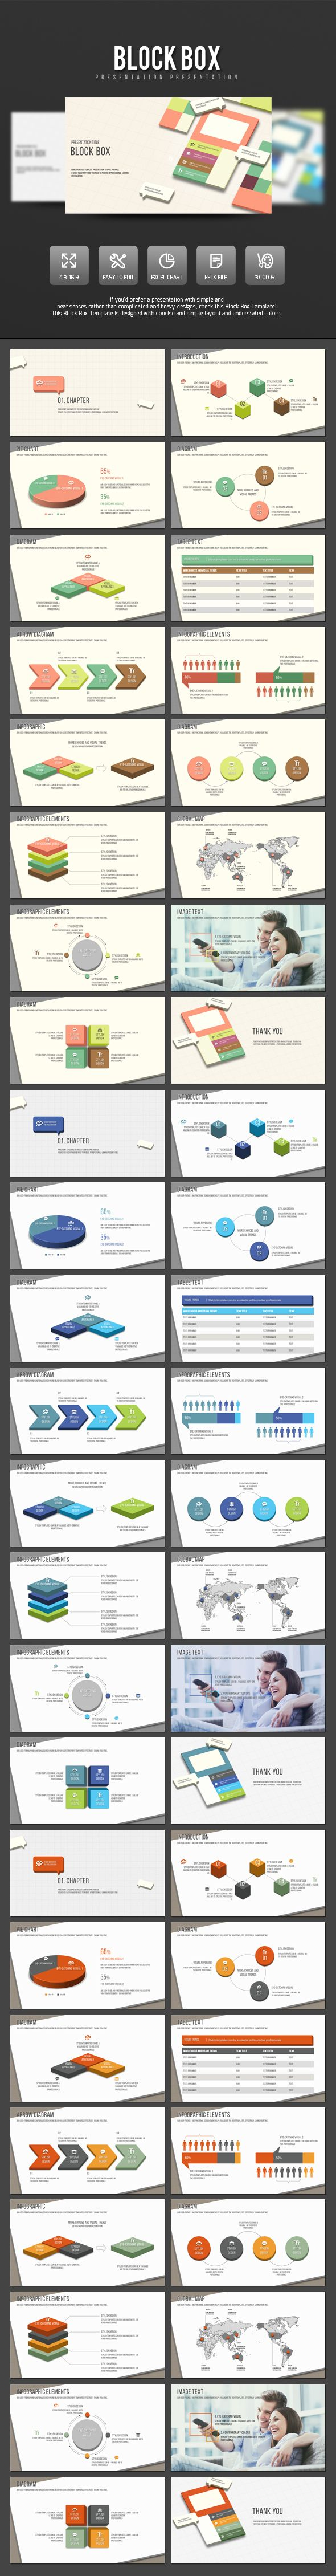 14 best simon ppt 2014 images on pinterest ppt design